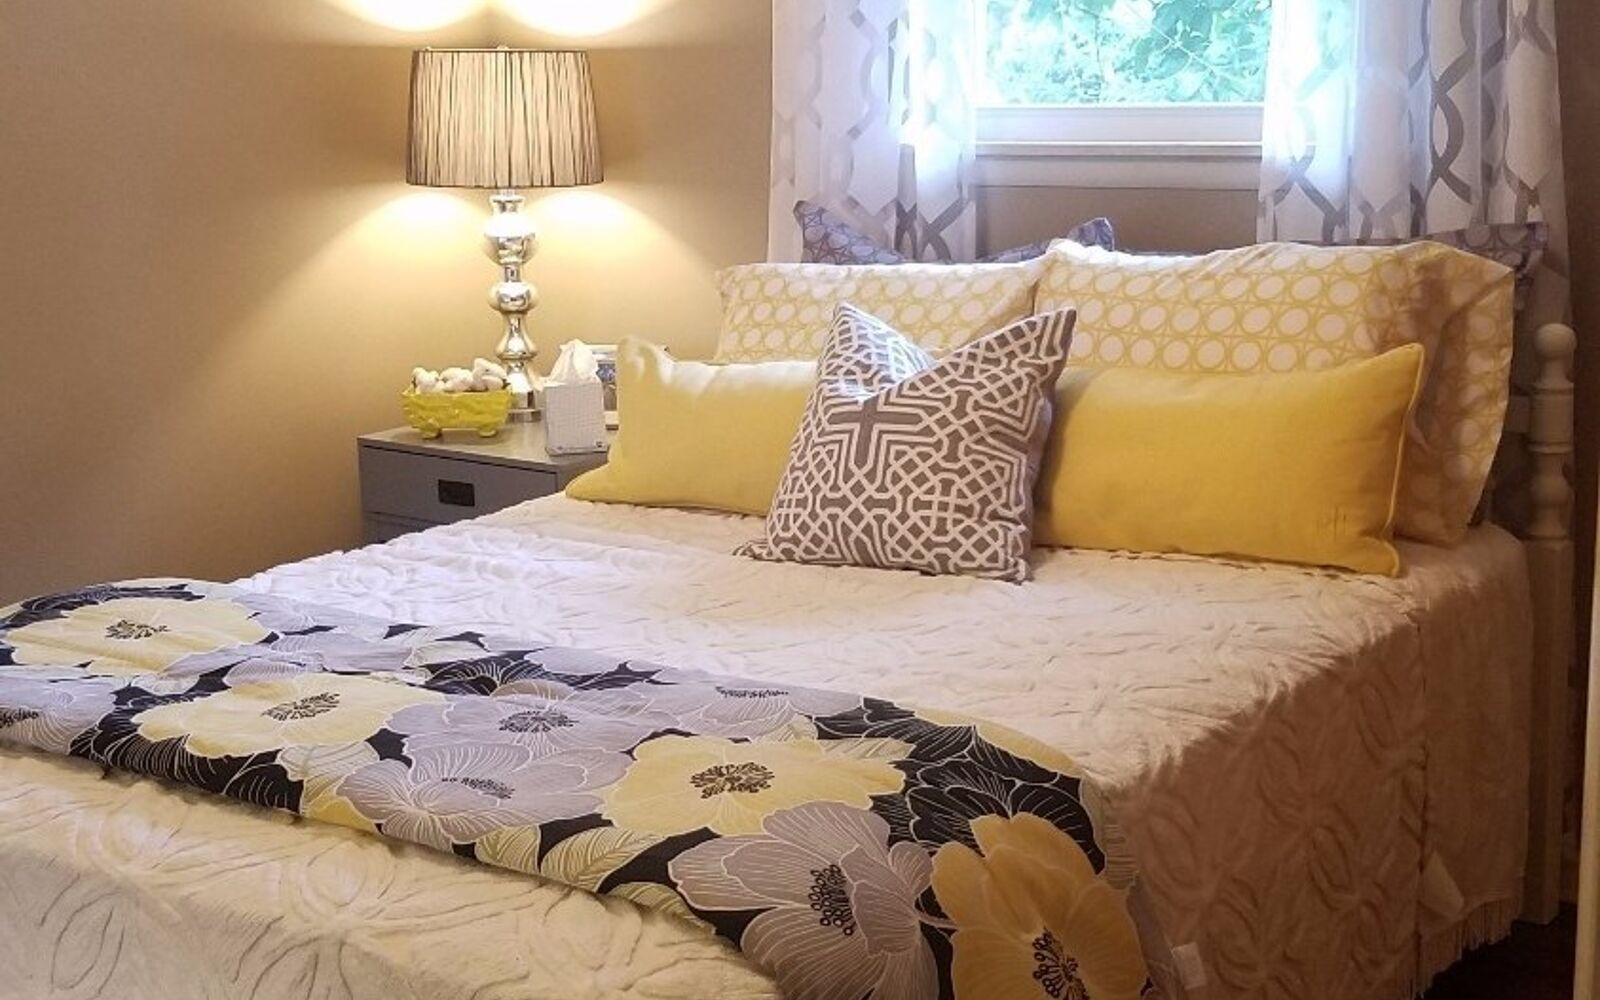 s 15 makeovers that will make you rethink your bedroom, Renovate the Guest Bedroom On A Budget